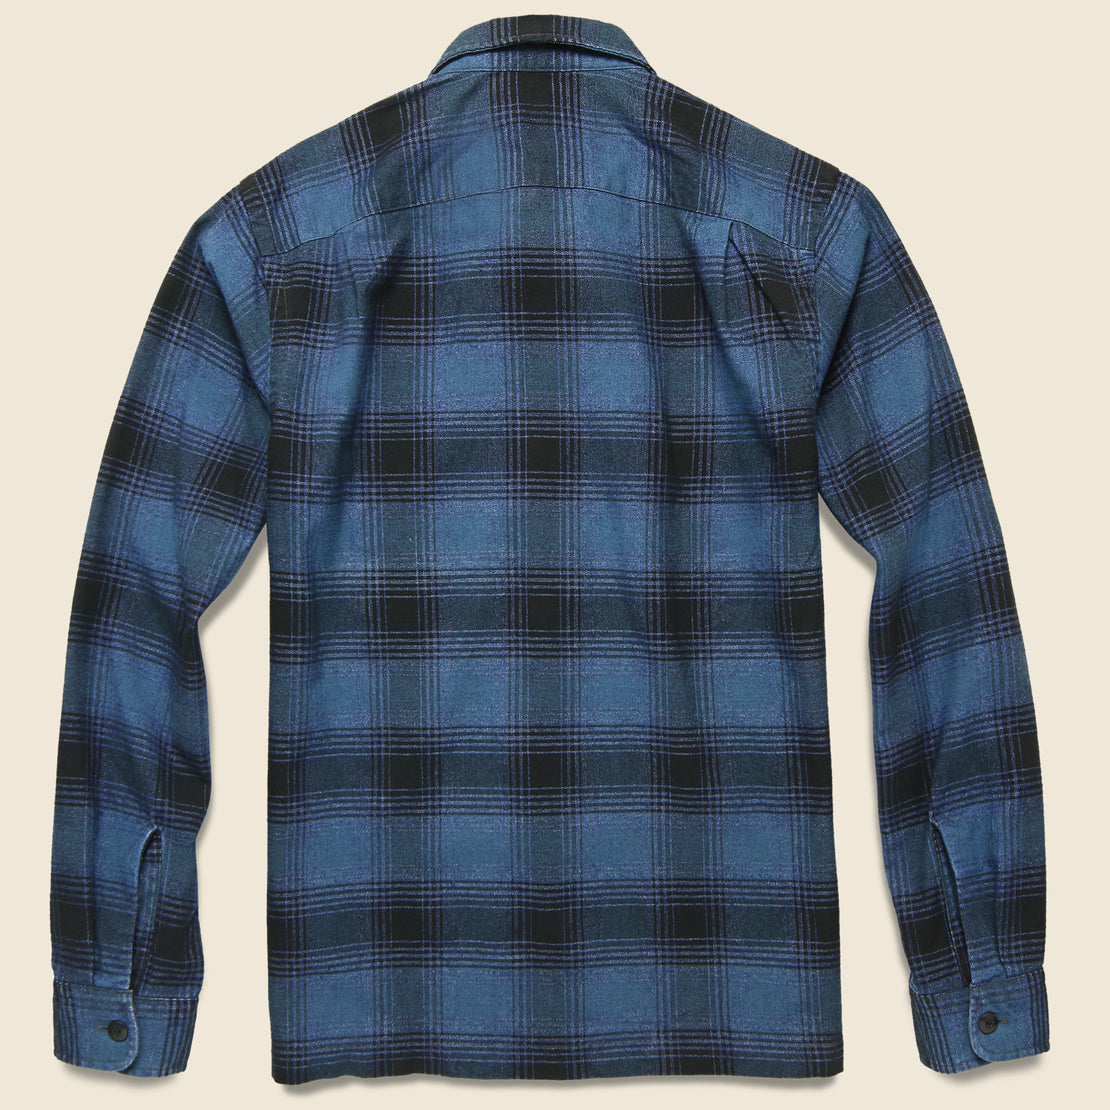 Brushed Ombre Plaid Towns Camp Shirt - Indigo/Black